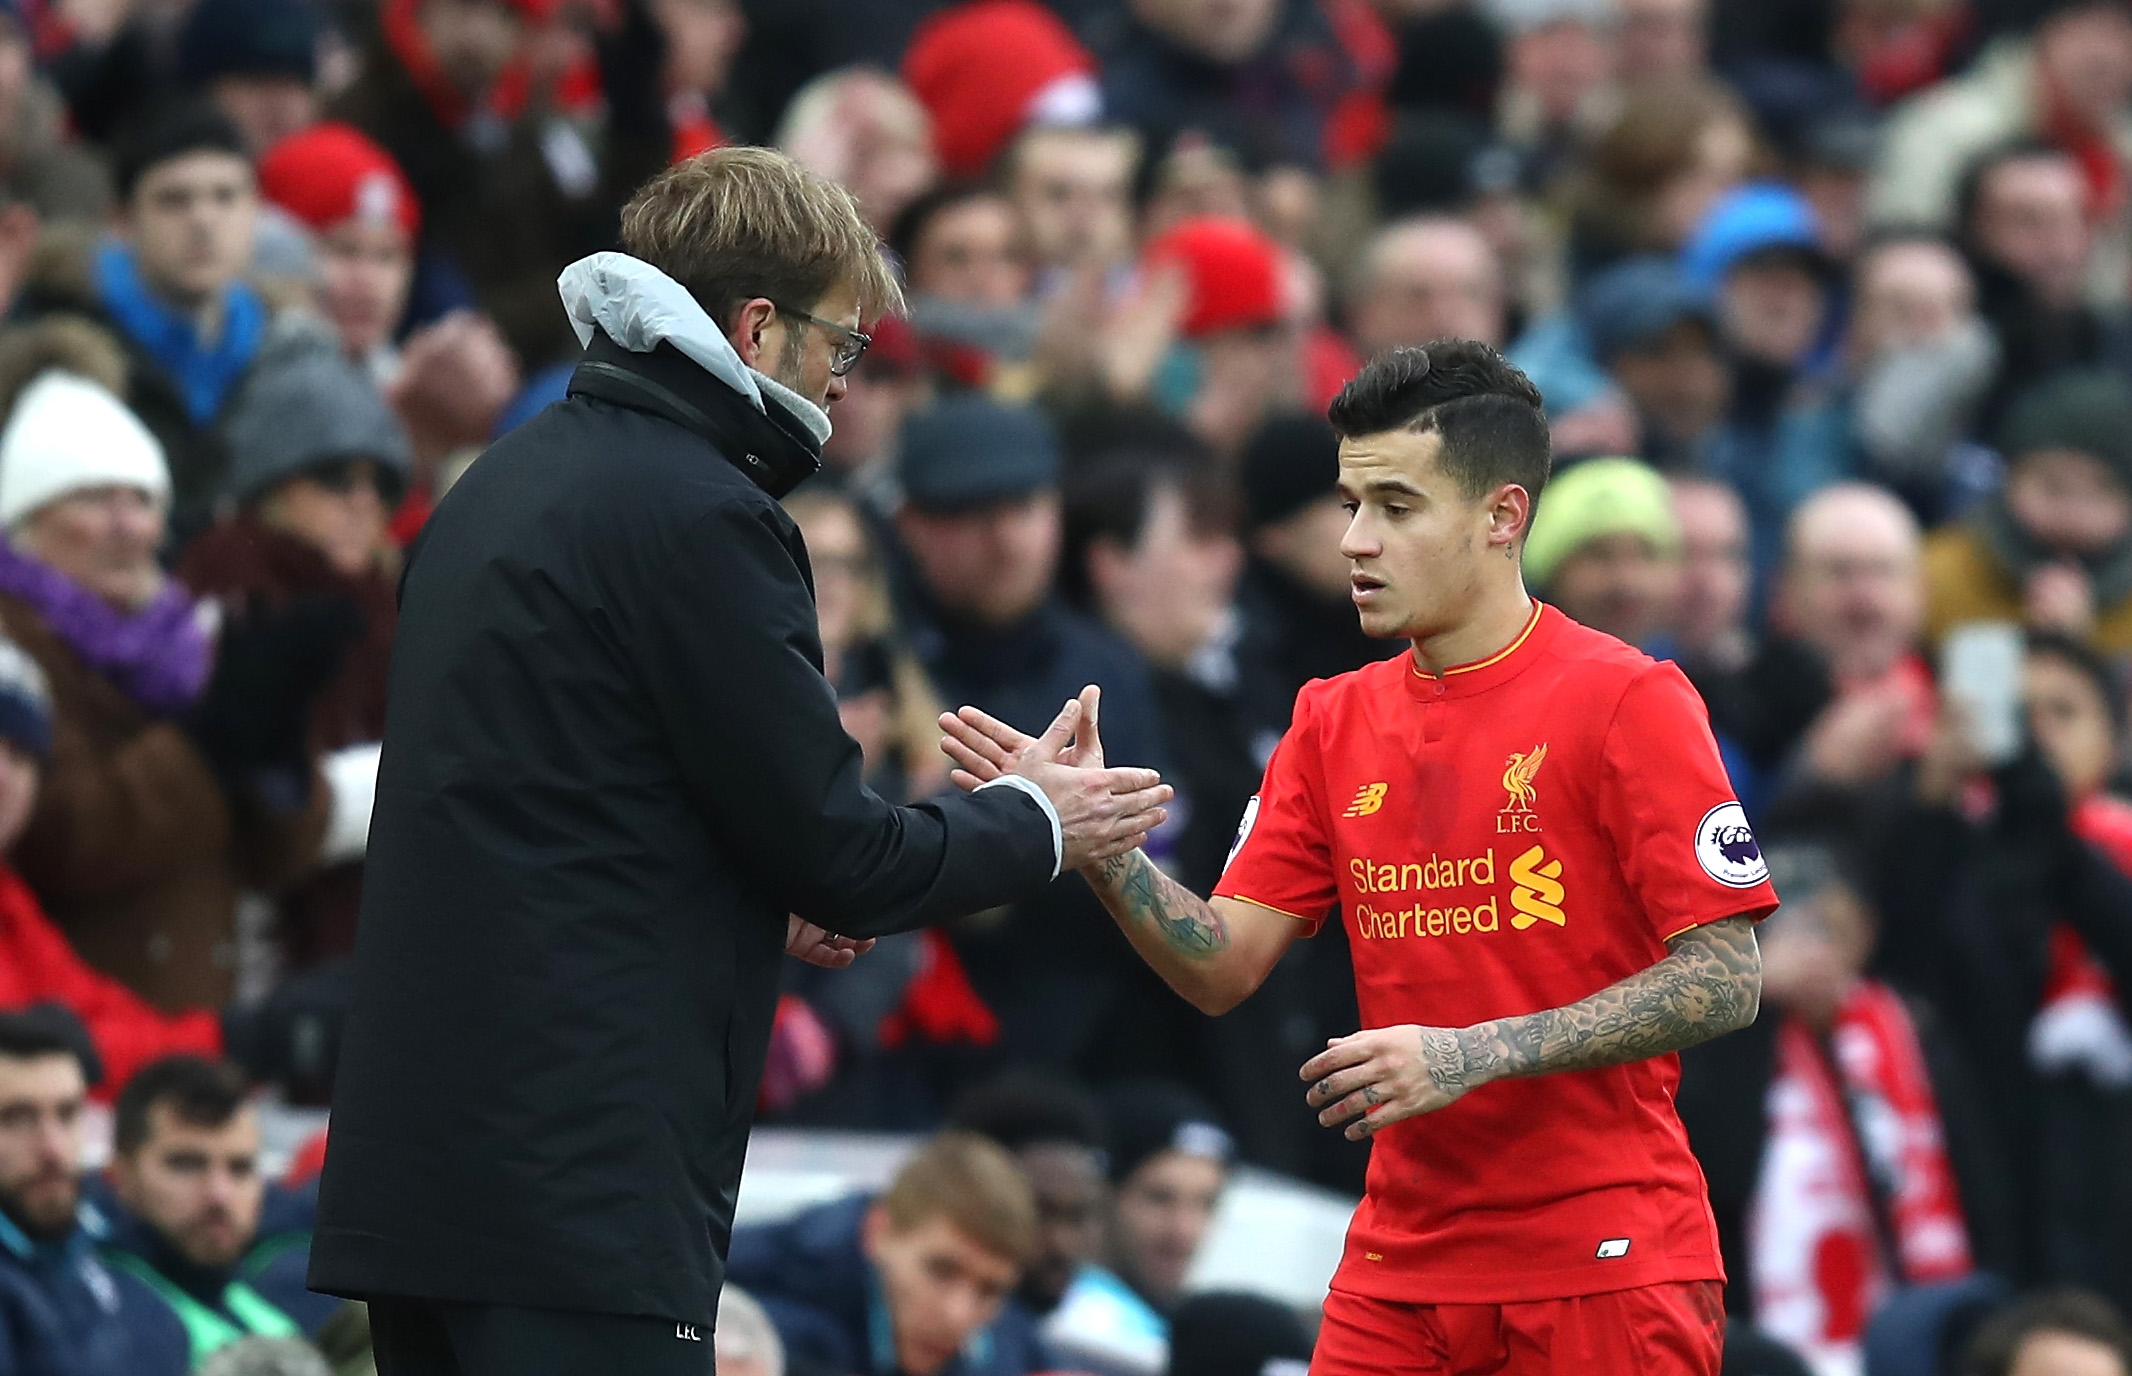 LIVERPOOL, ENGLAND - JANUARY 21: Jurgen Klopp, Manager of Liverpool (L) and Philippe Coutinho of Liverpool (R) shake hands after he is subbed off during the Premier League match between Liverpool and Swansea City at Anfield on January 21, 2017 in Liverpool, England.  (Photo by Julian Finney/Getty Images)